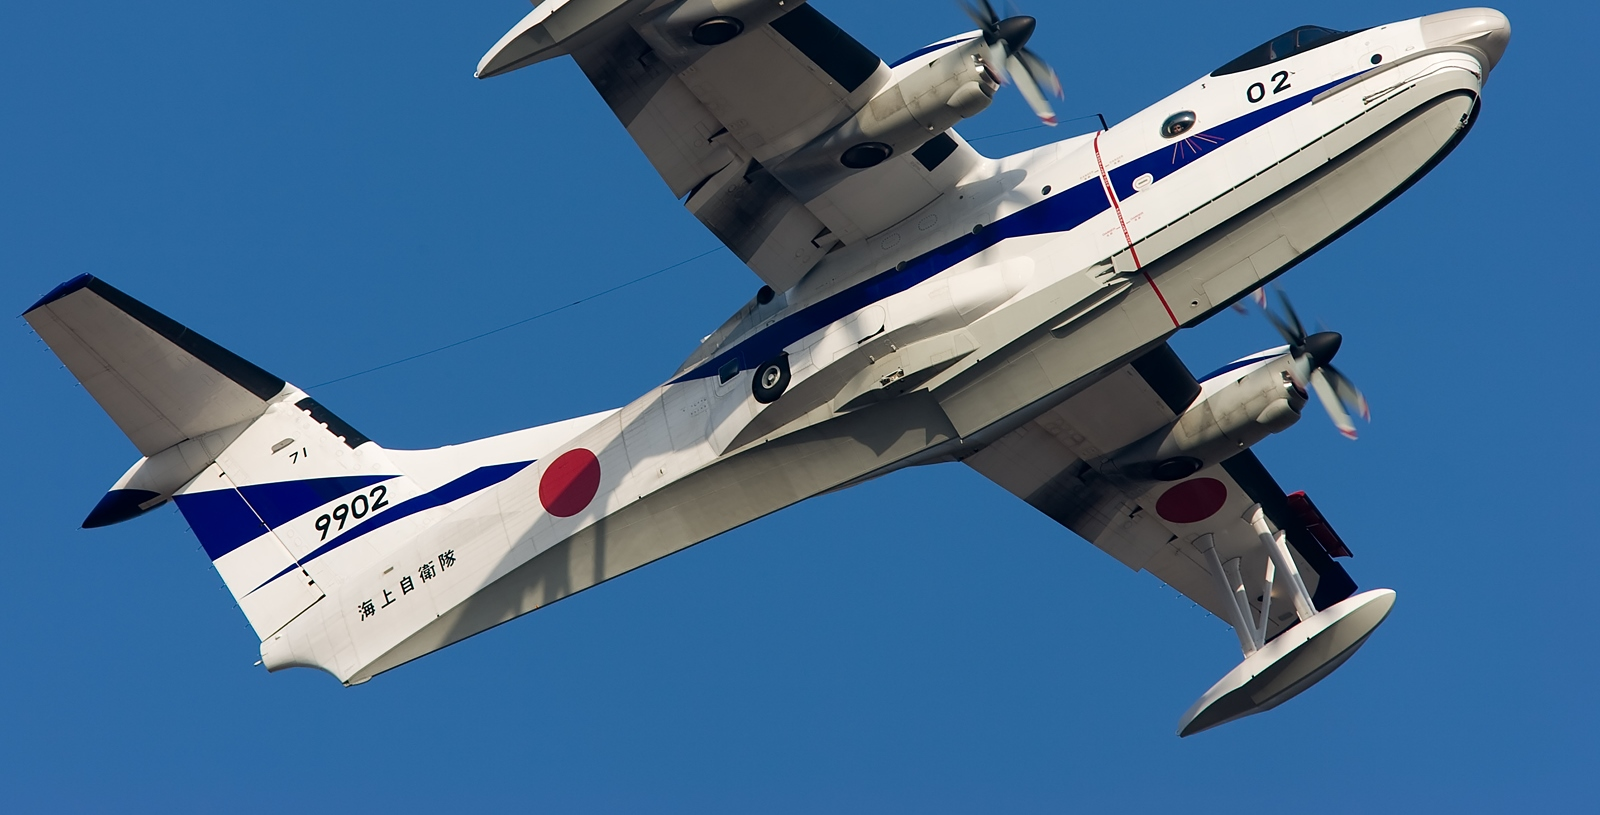 The US-2 amphibious aircraft, which Japan is offering to sell to India. (Flickr/Ken H)